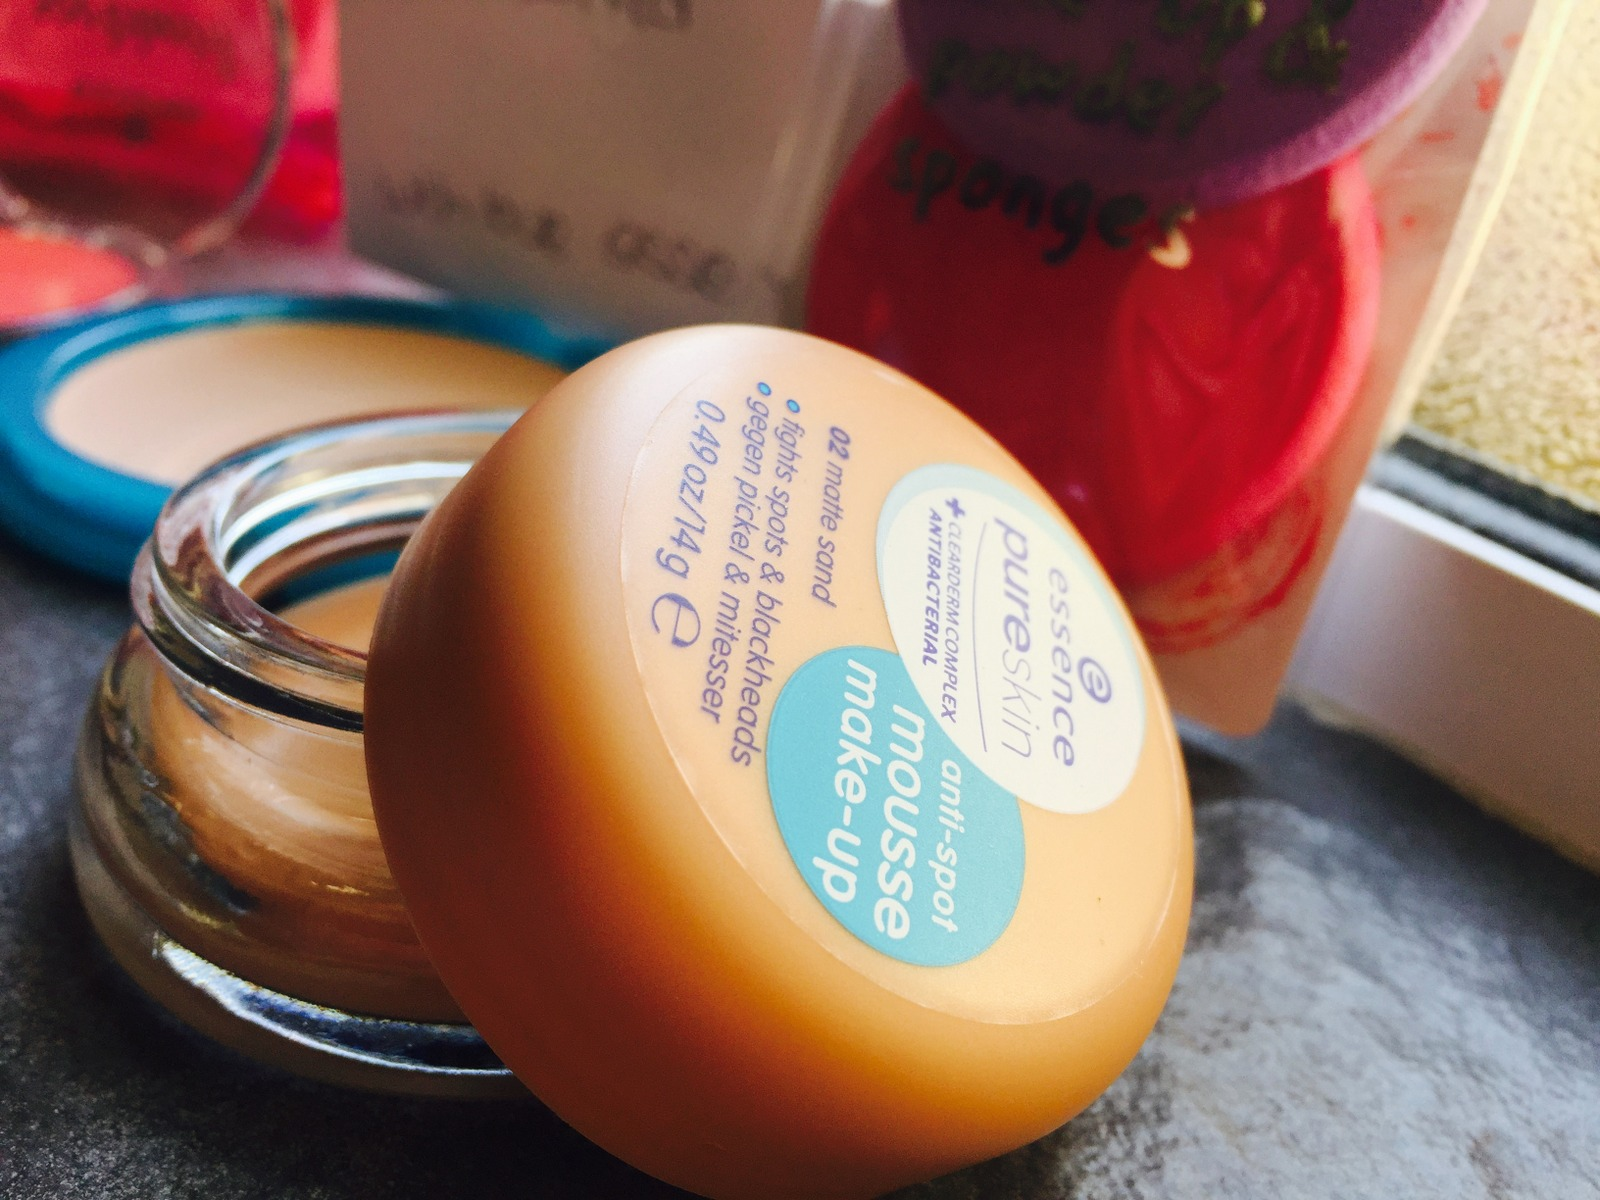 Essence Make-up Review   The Starlit Path